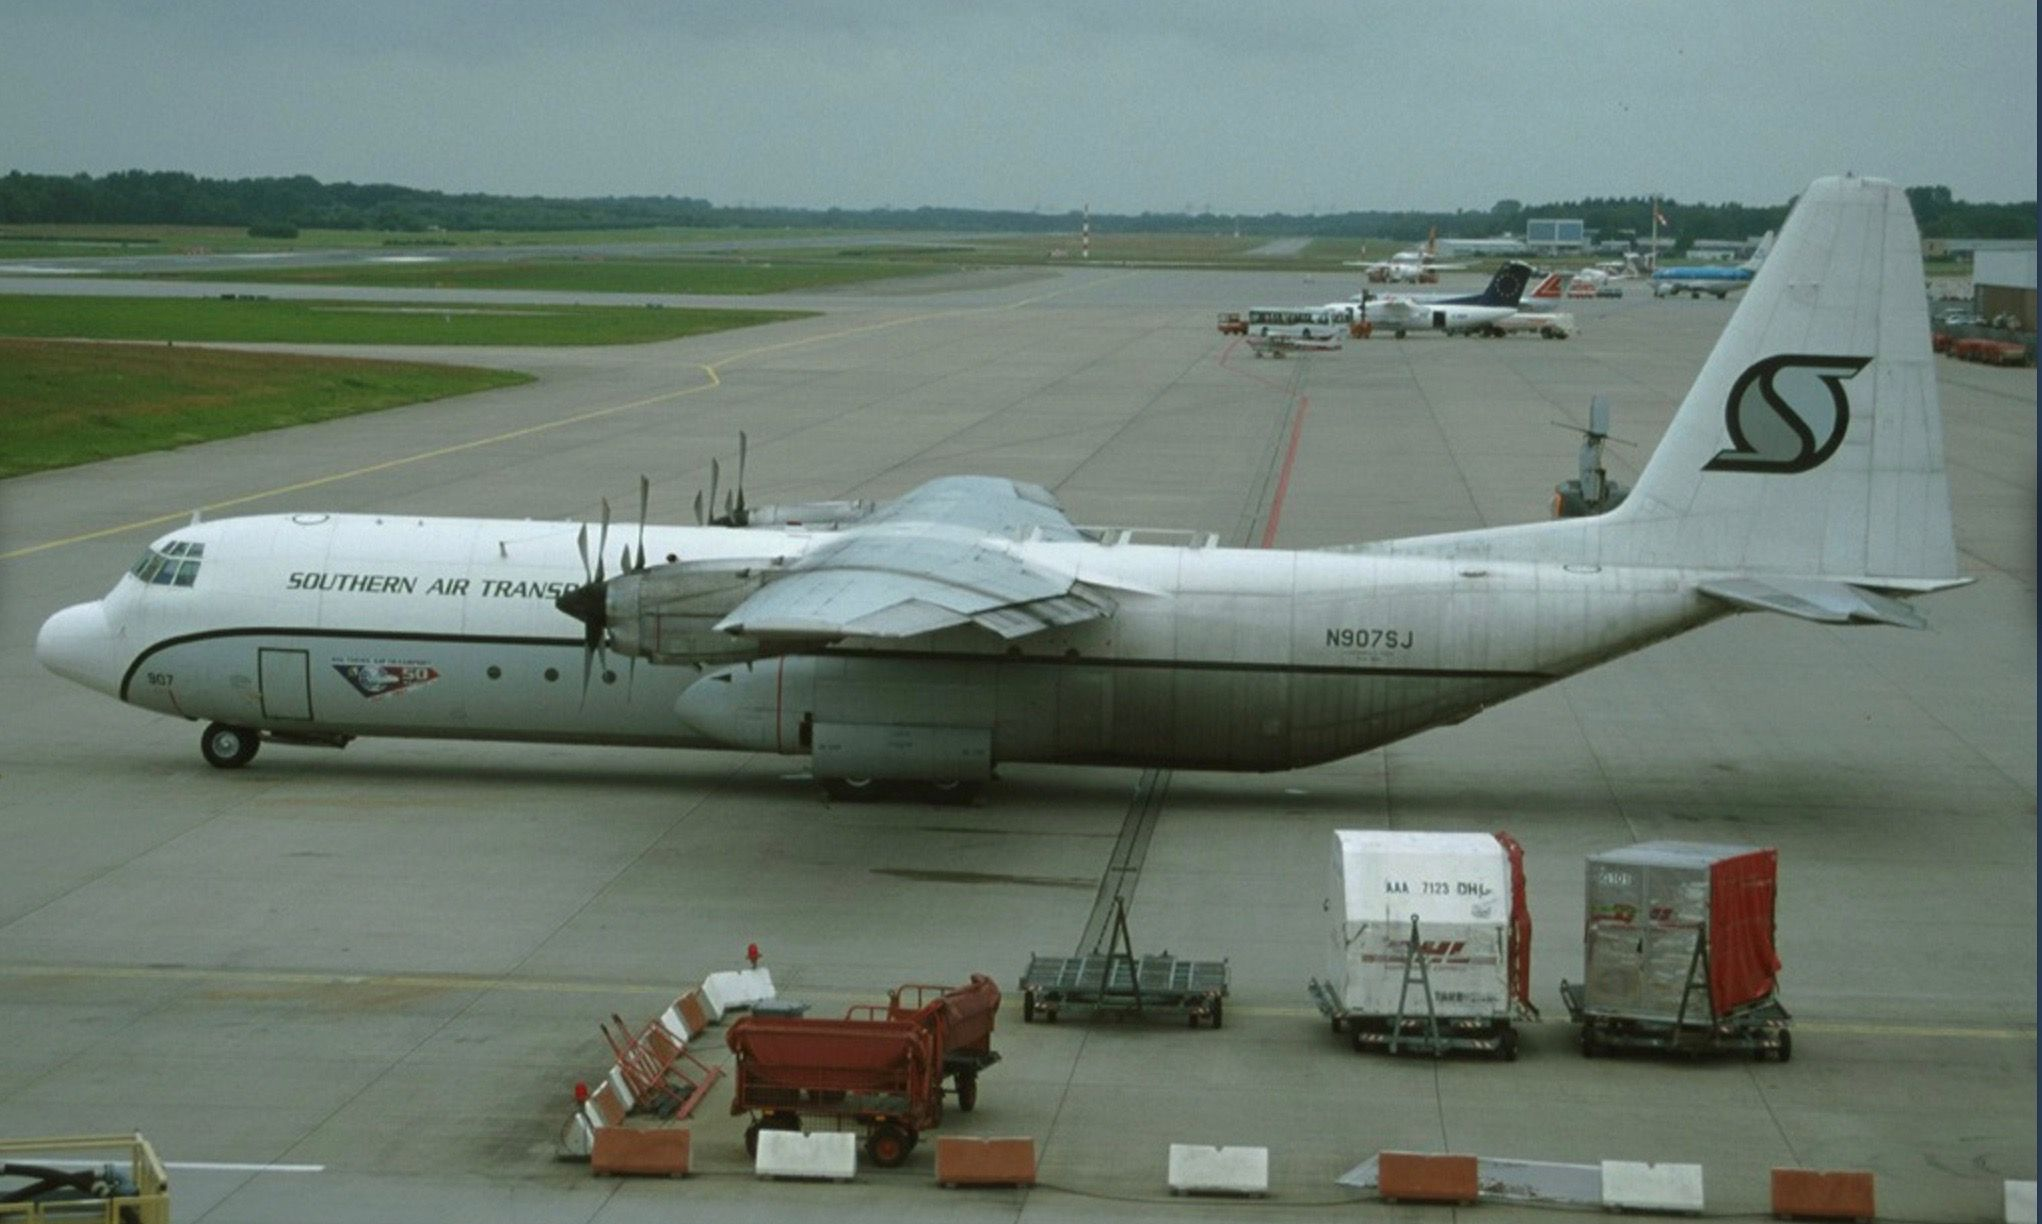 Pin by Kevin DeForest on Lockheed Passenger aircraft